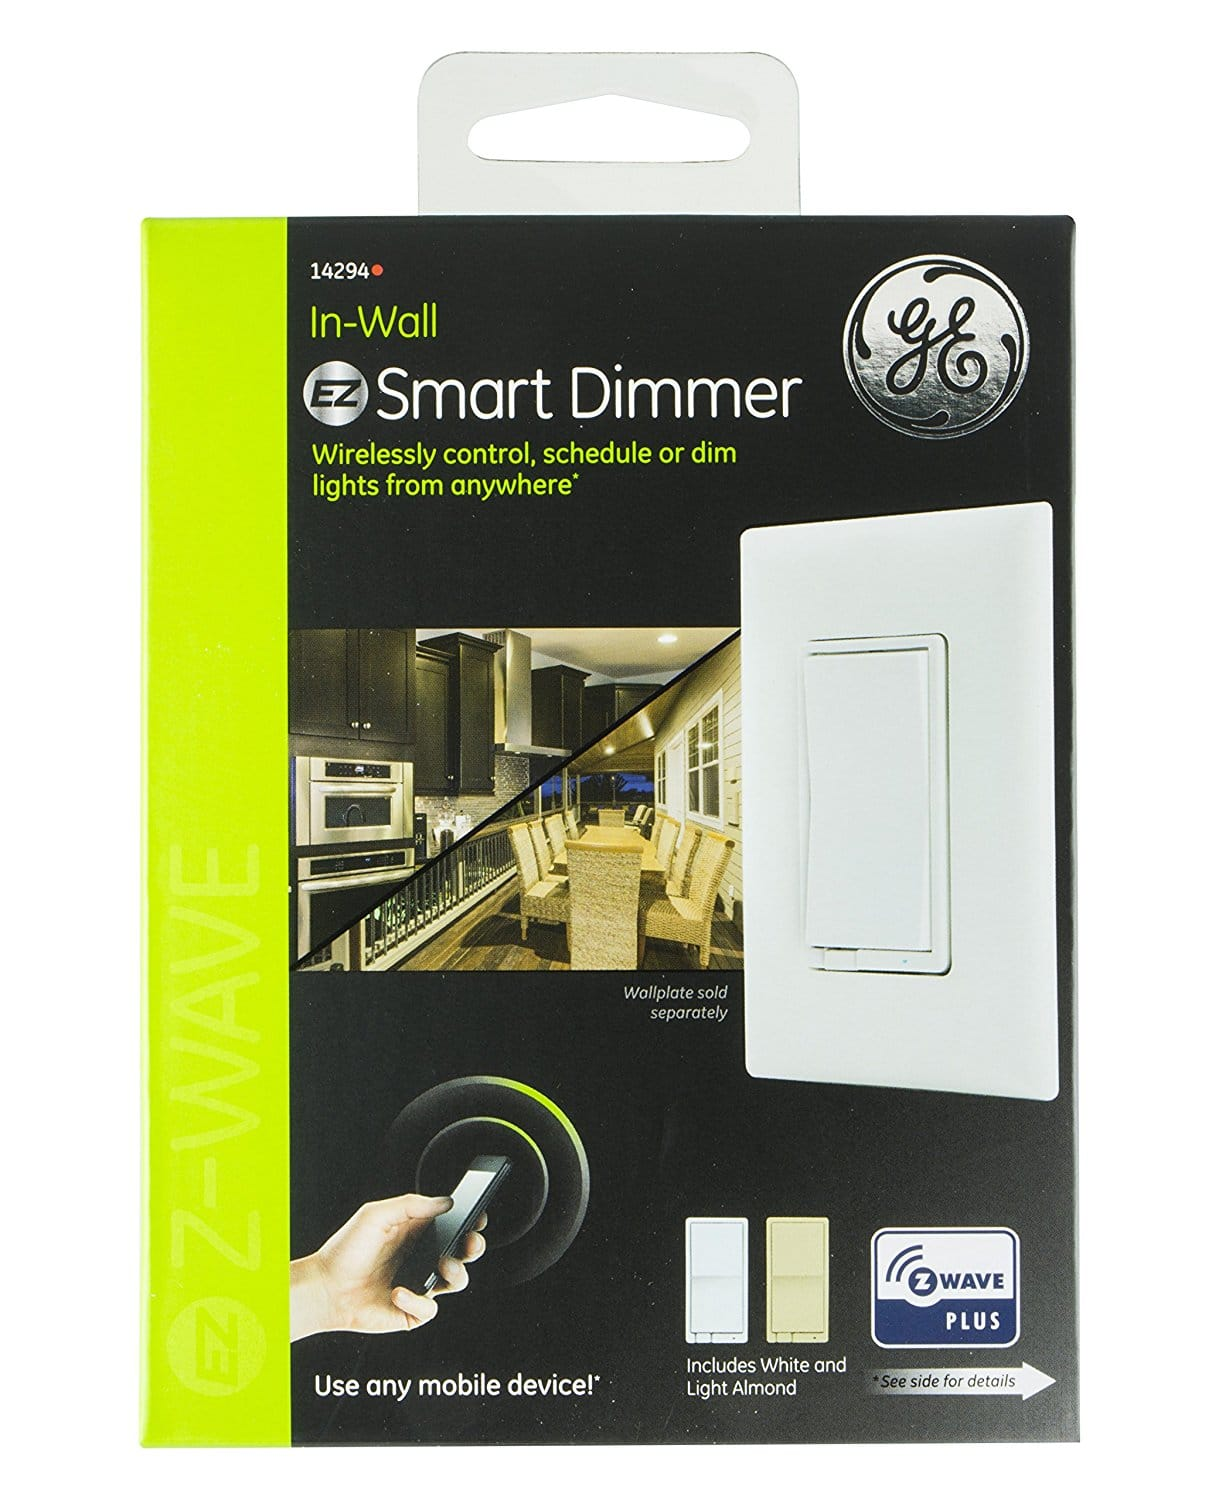 [Lowes] GE Z-wave plus on/off from $22.99 or Dimmer from $28.32